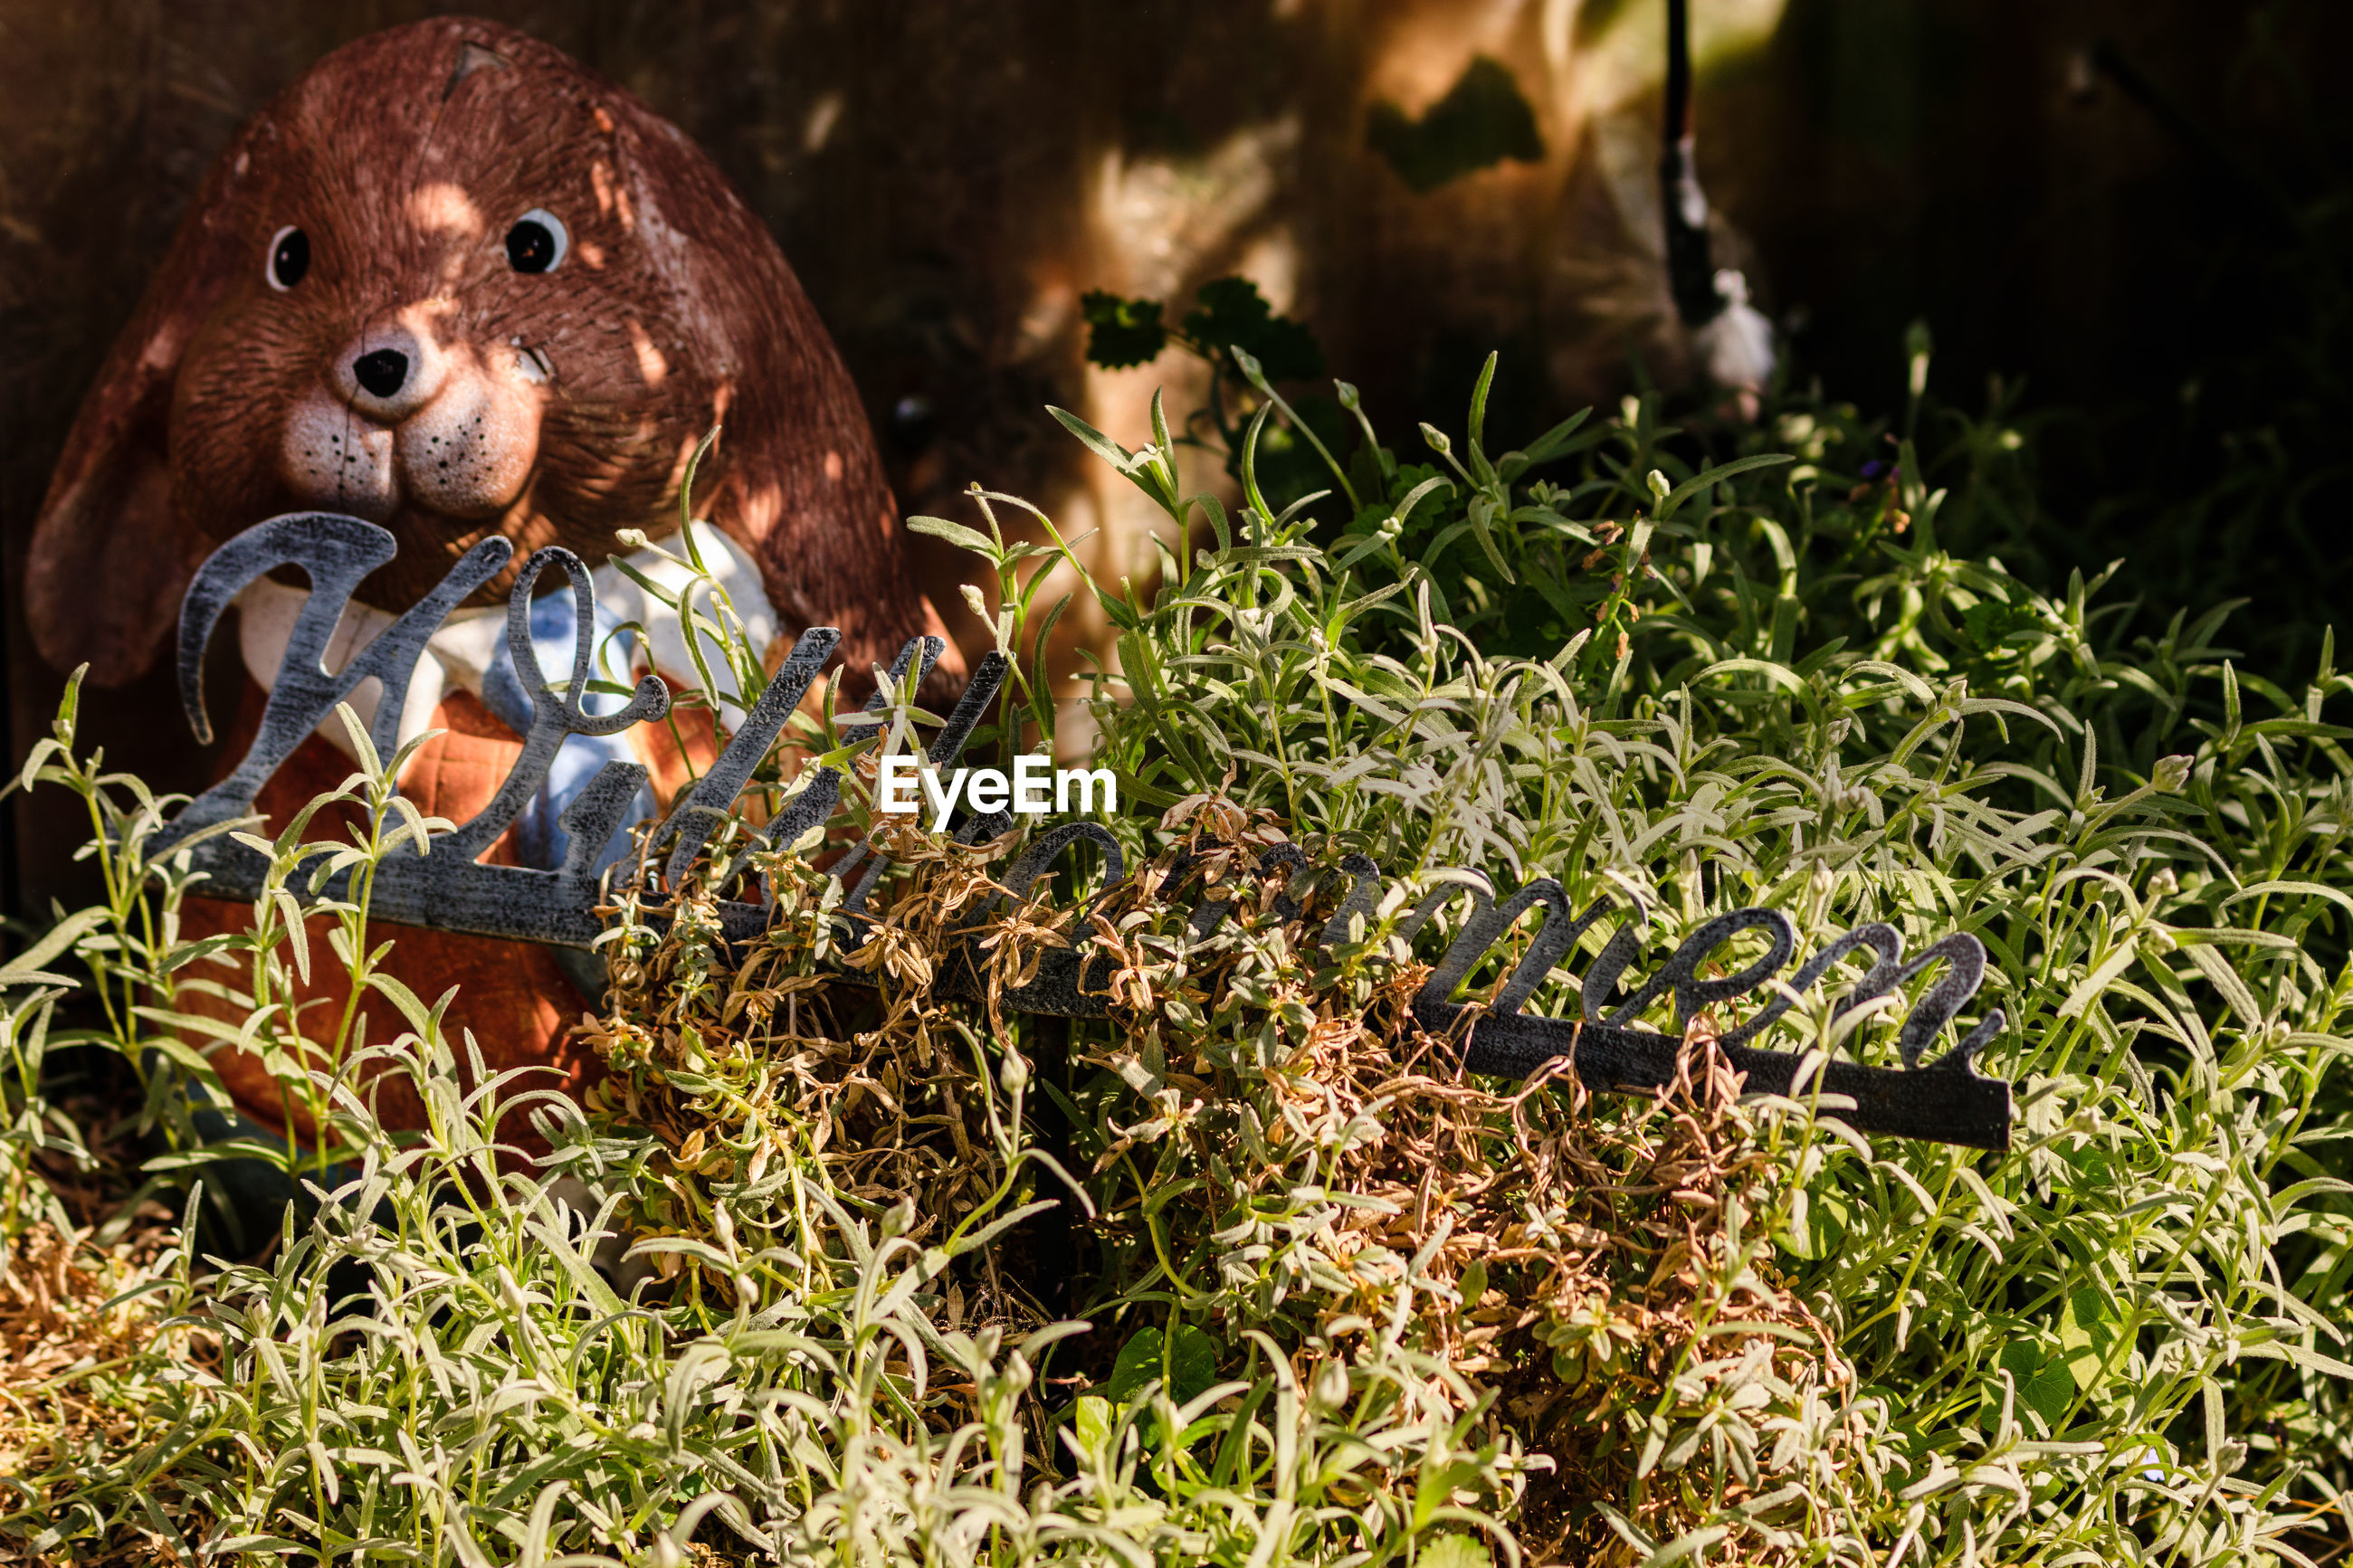 VIEW OF STUFFED TOY ON GRASS